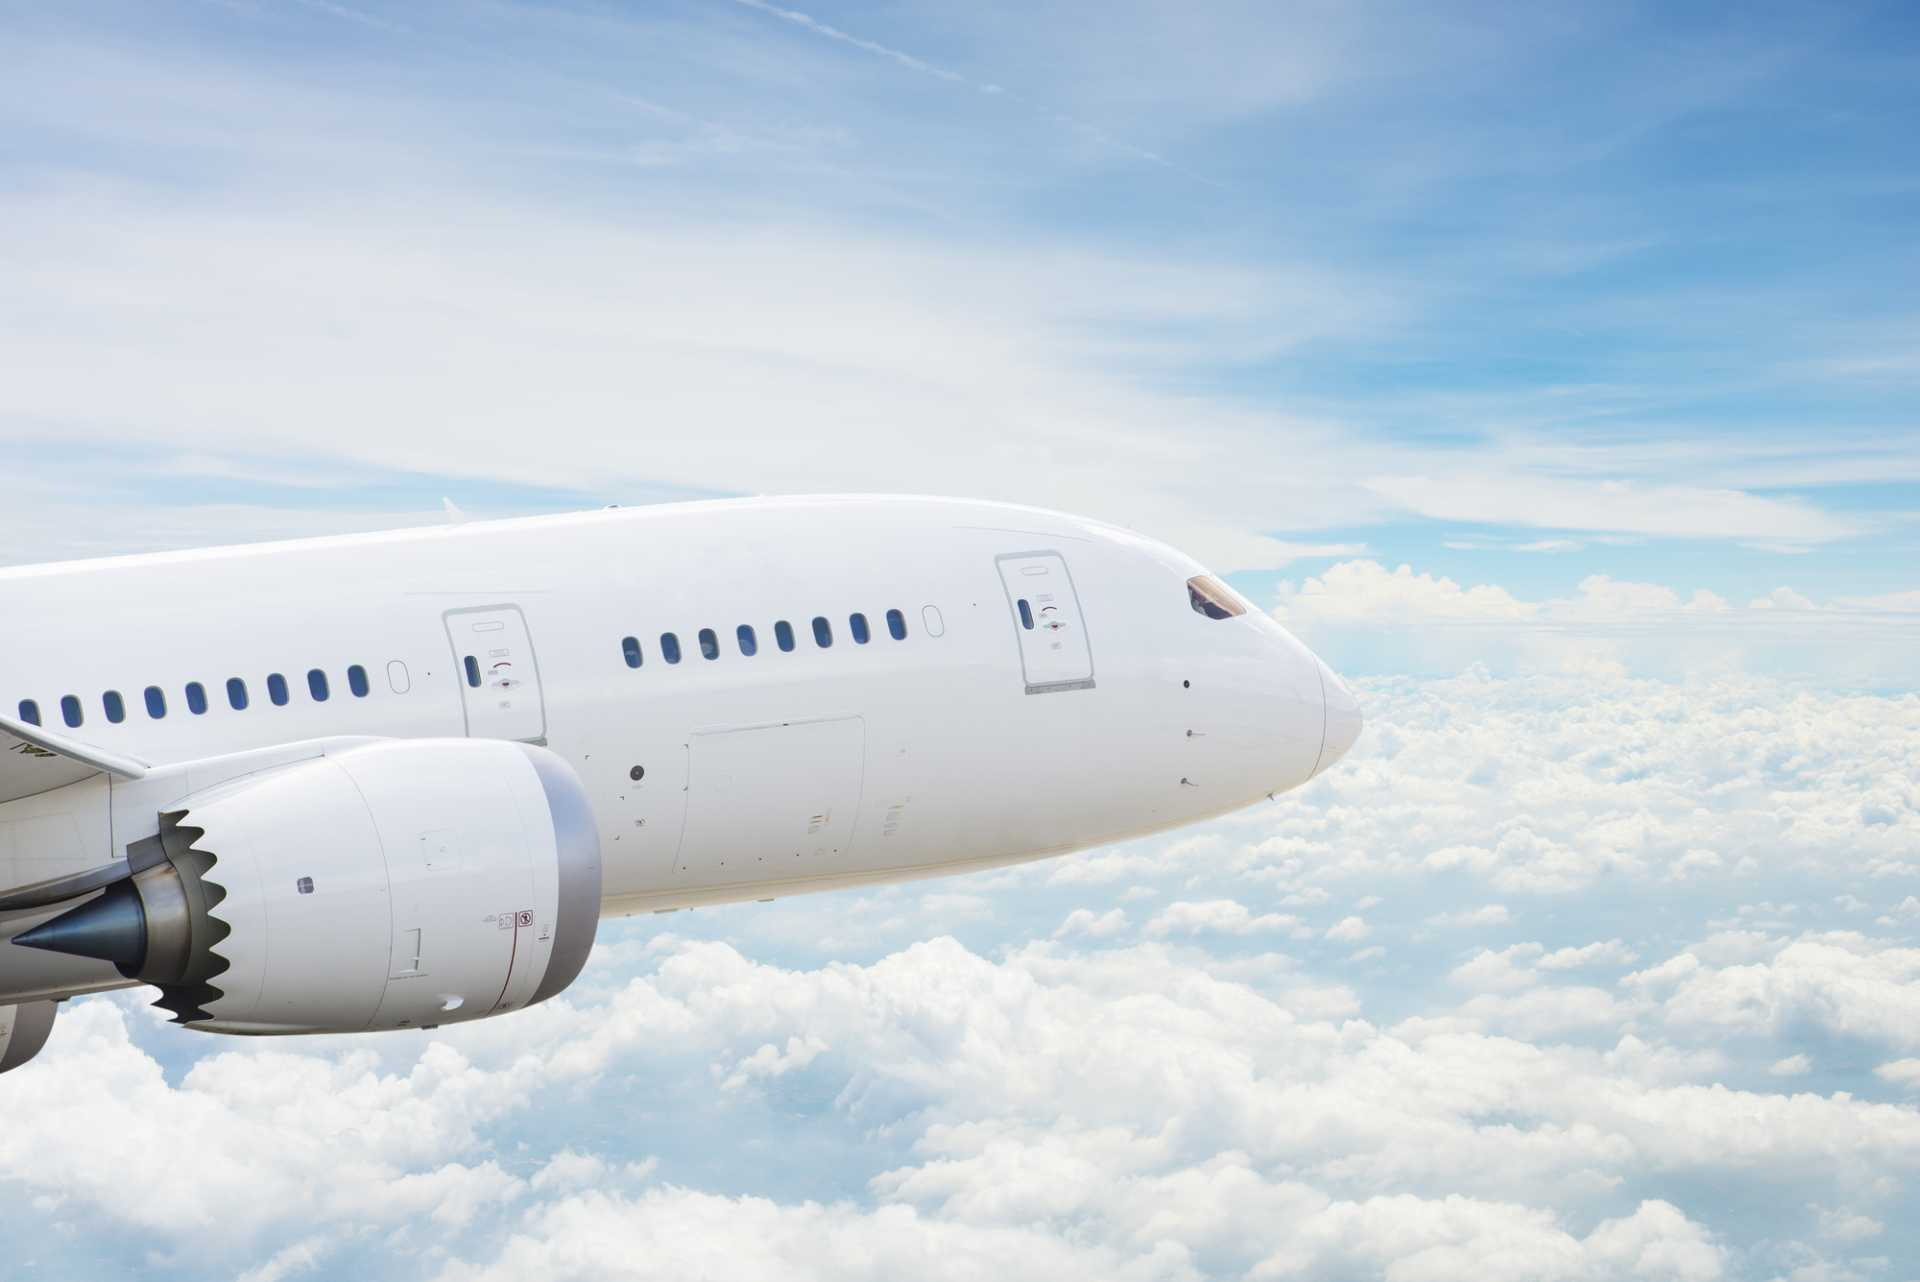 UK suppliers in the aerospace industry play a big part in Airbus' success - image courtesy of Depositphotos.